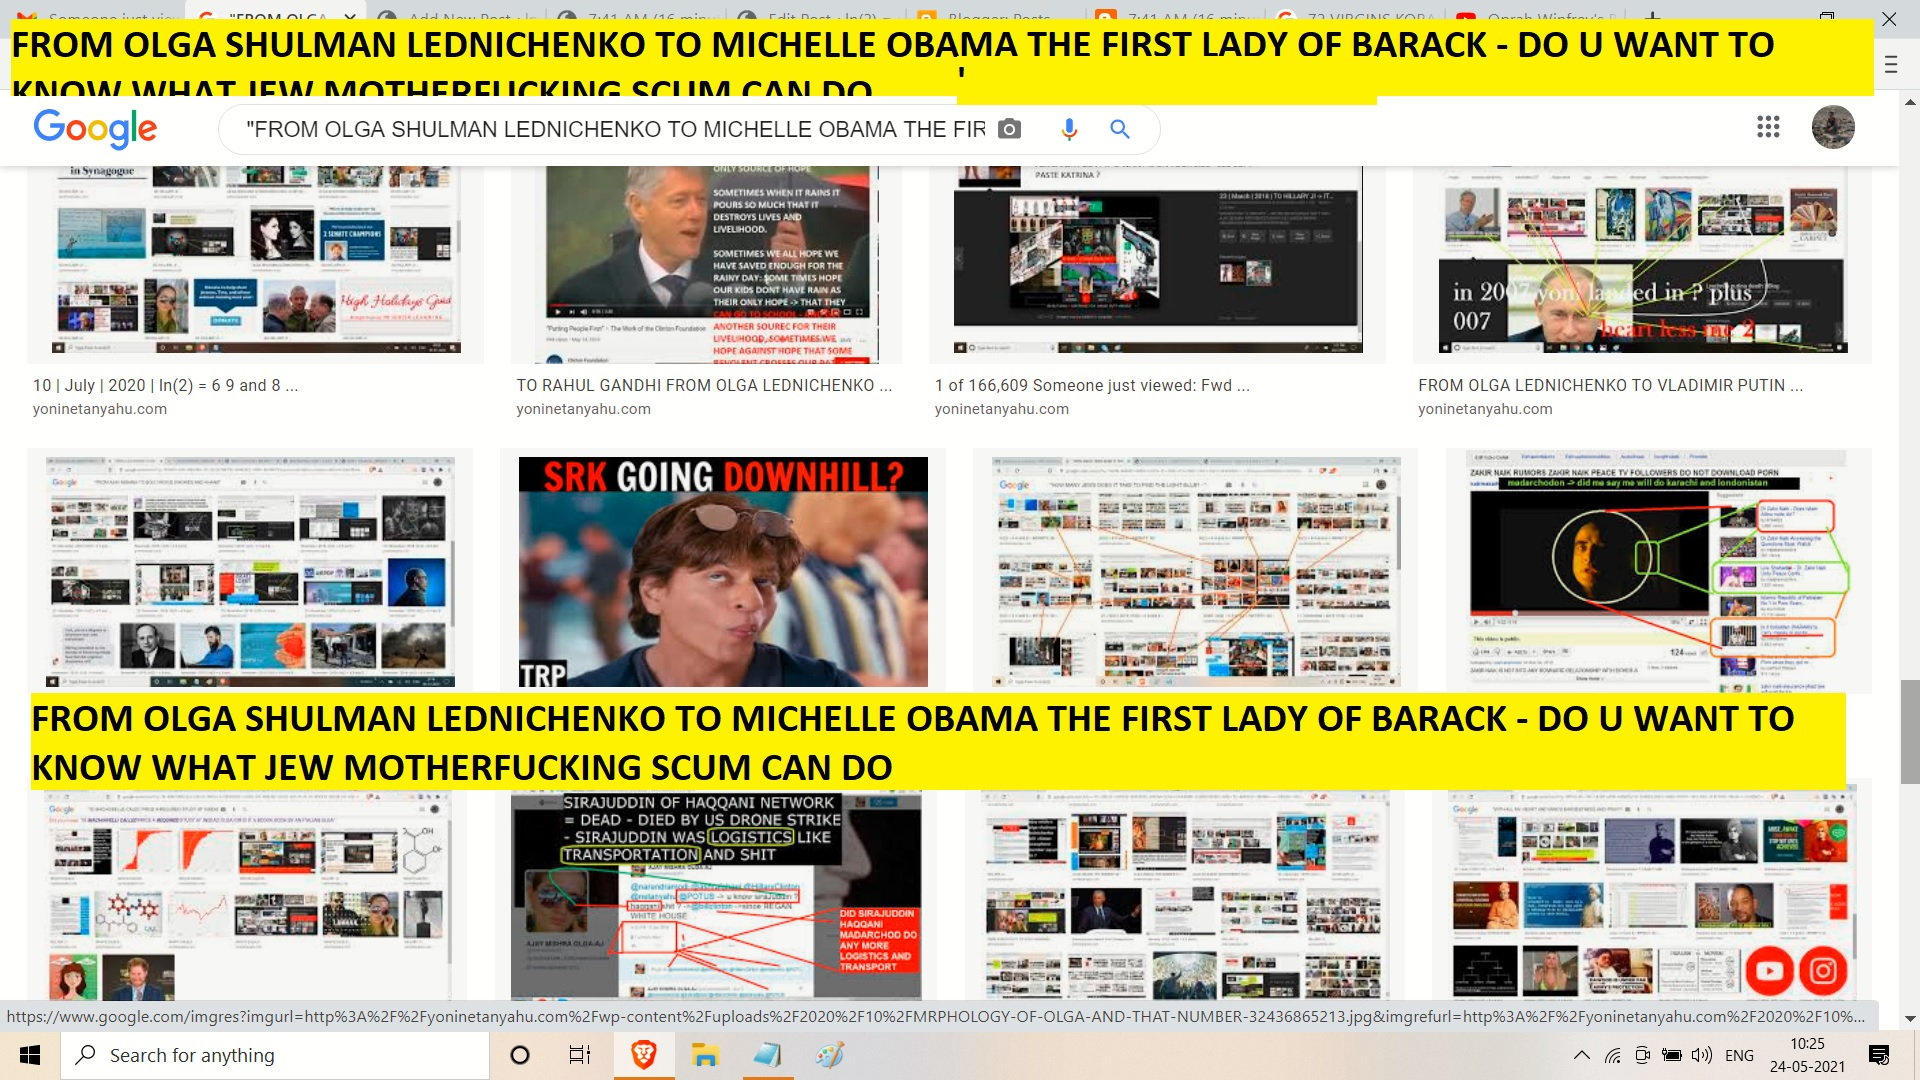 FROM OLGA SHULMAN LEDNICHENKO TO MICHELLE OBAMA THE FIRST LADY OF BARACK - DO U WANT TO KNOW WHAT JEW MOTHERFUCKING SCUM CAN DO ----=---===========